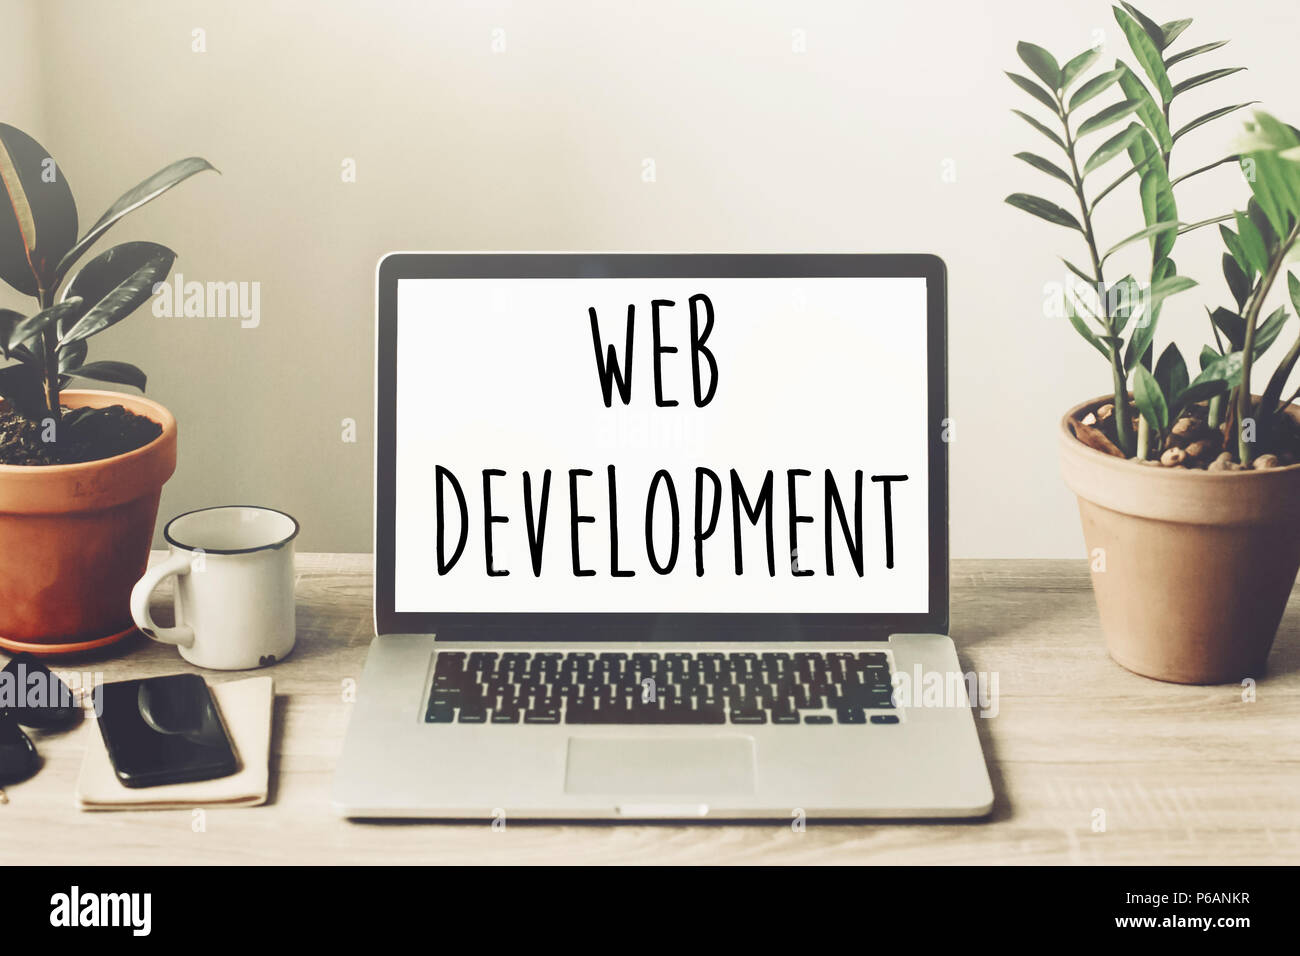 web development text on laptop screen on wooden desktop with